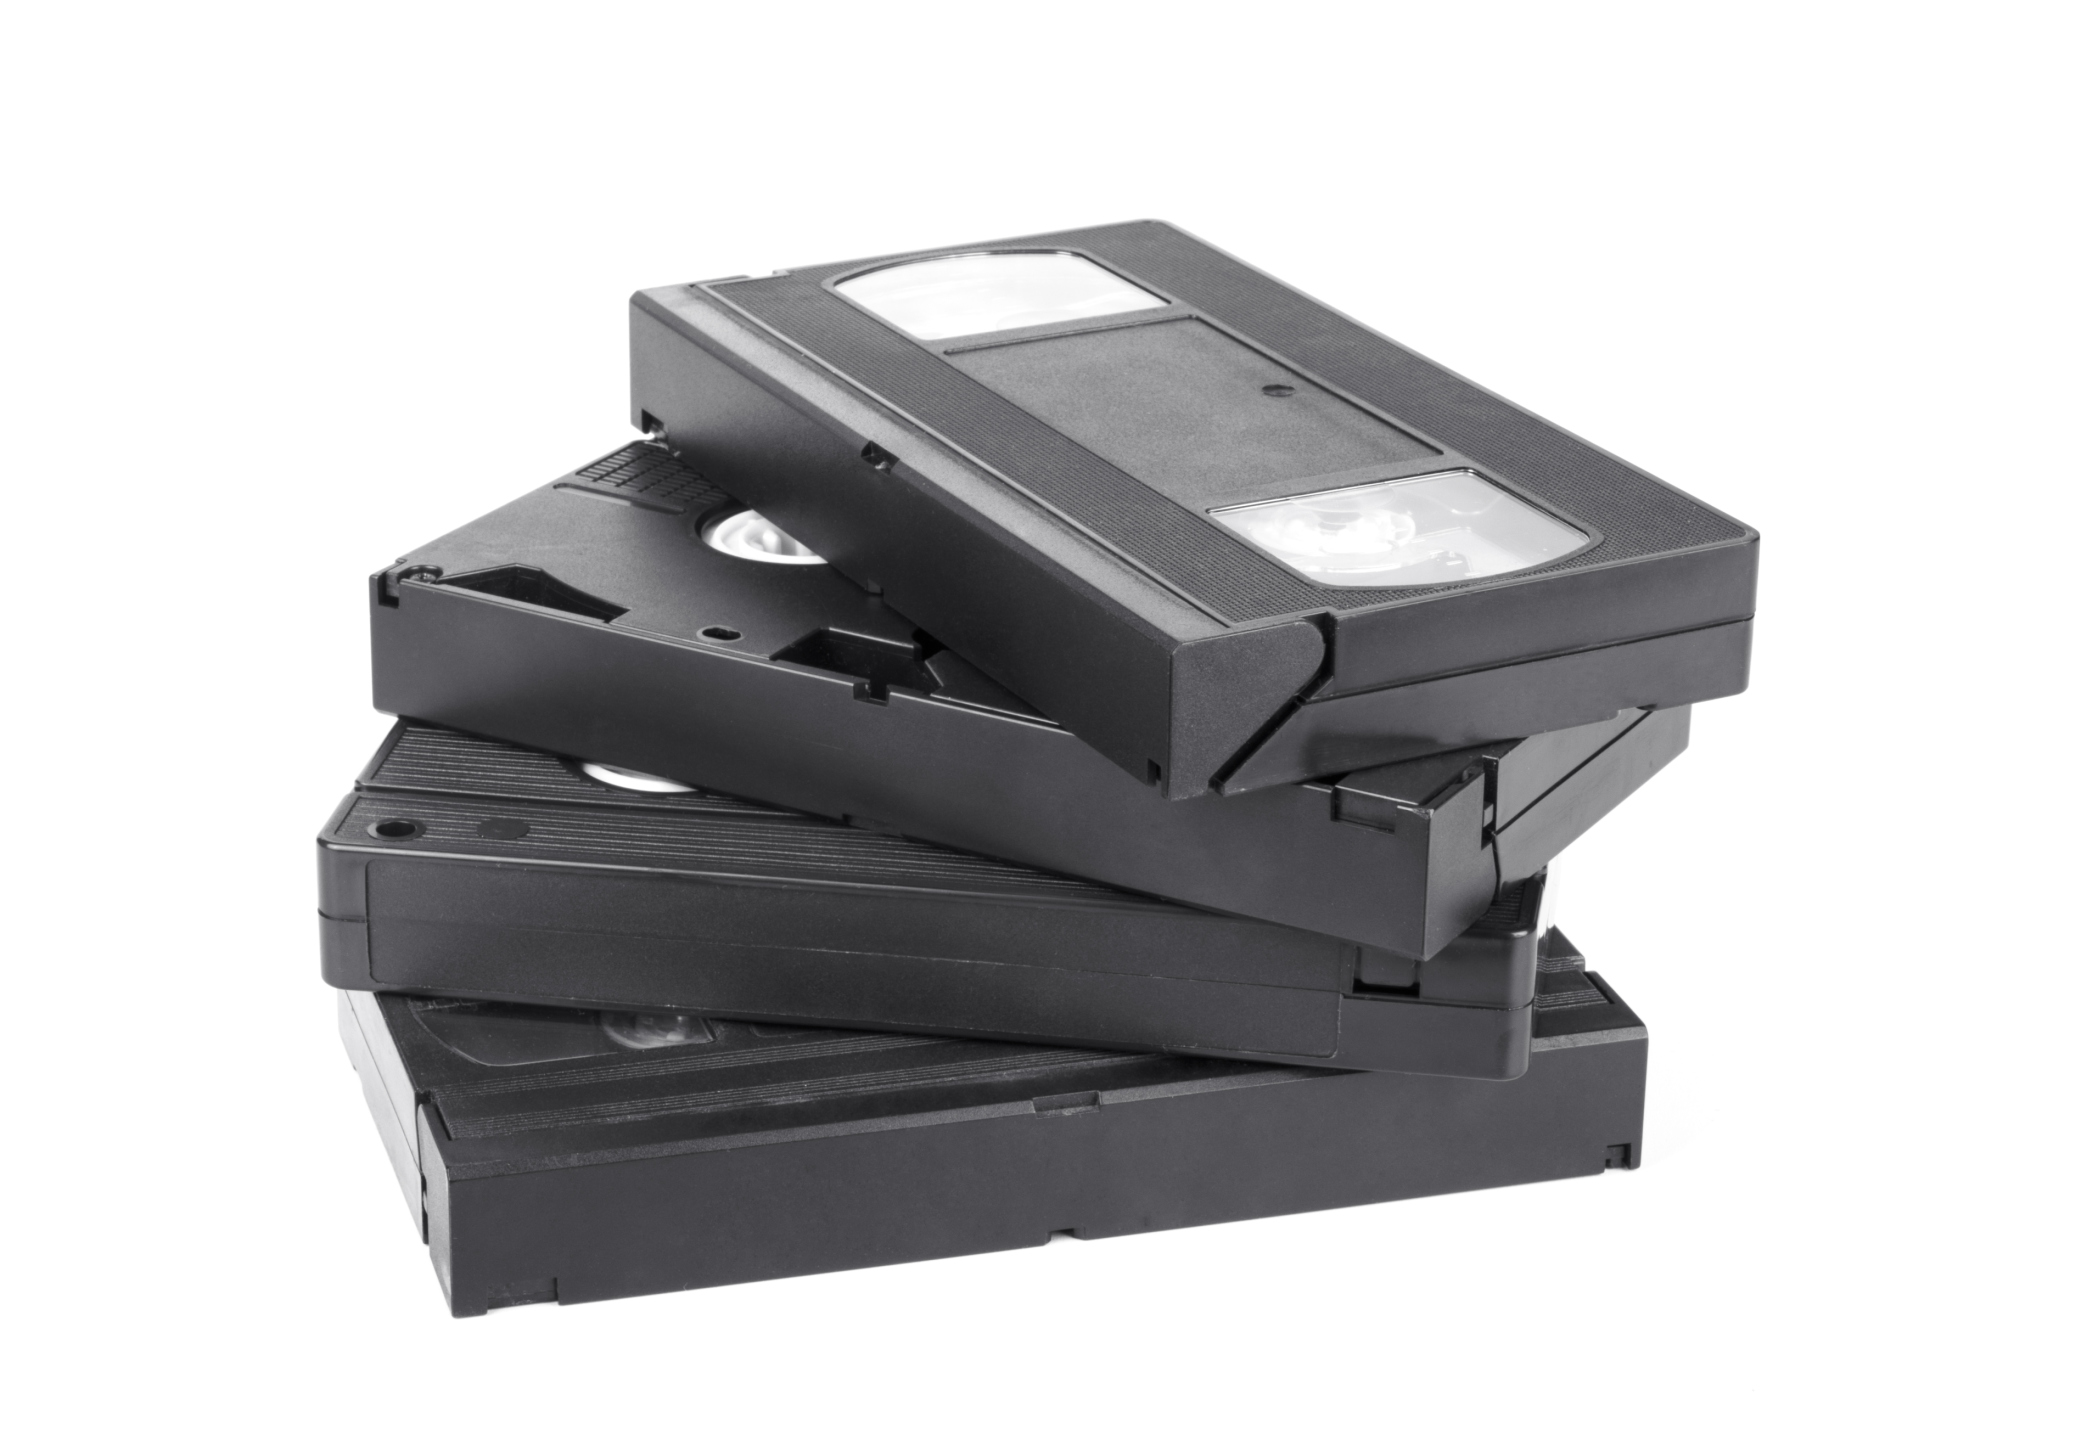 New life for old home videos